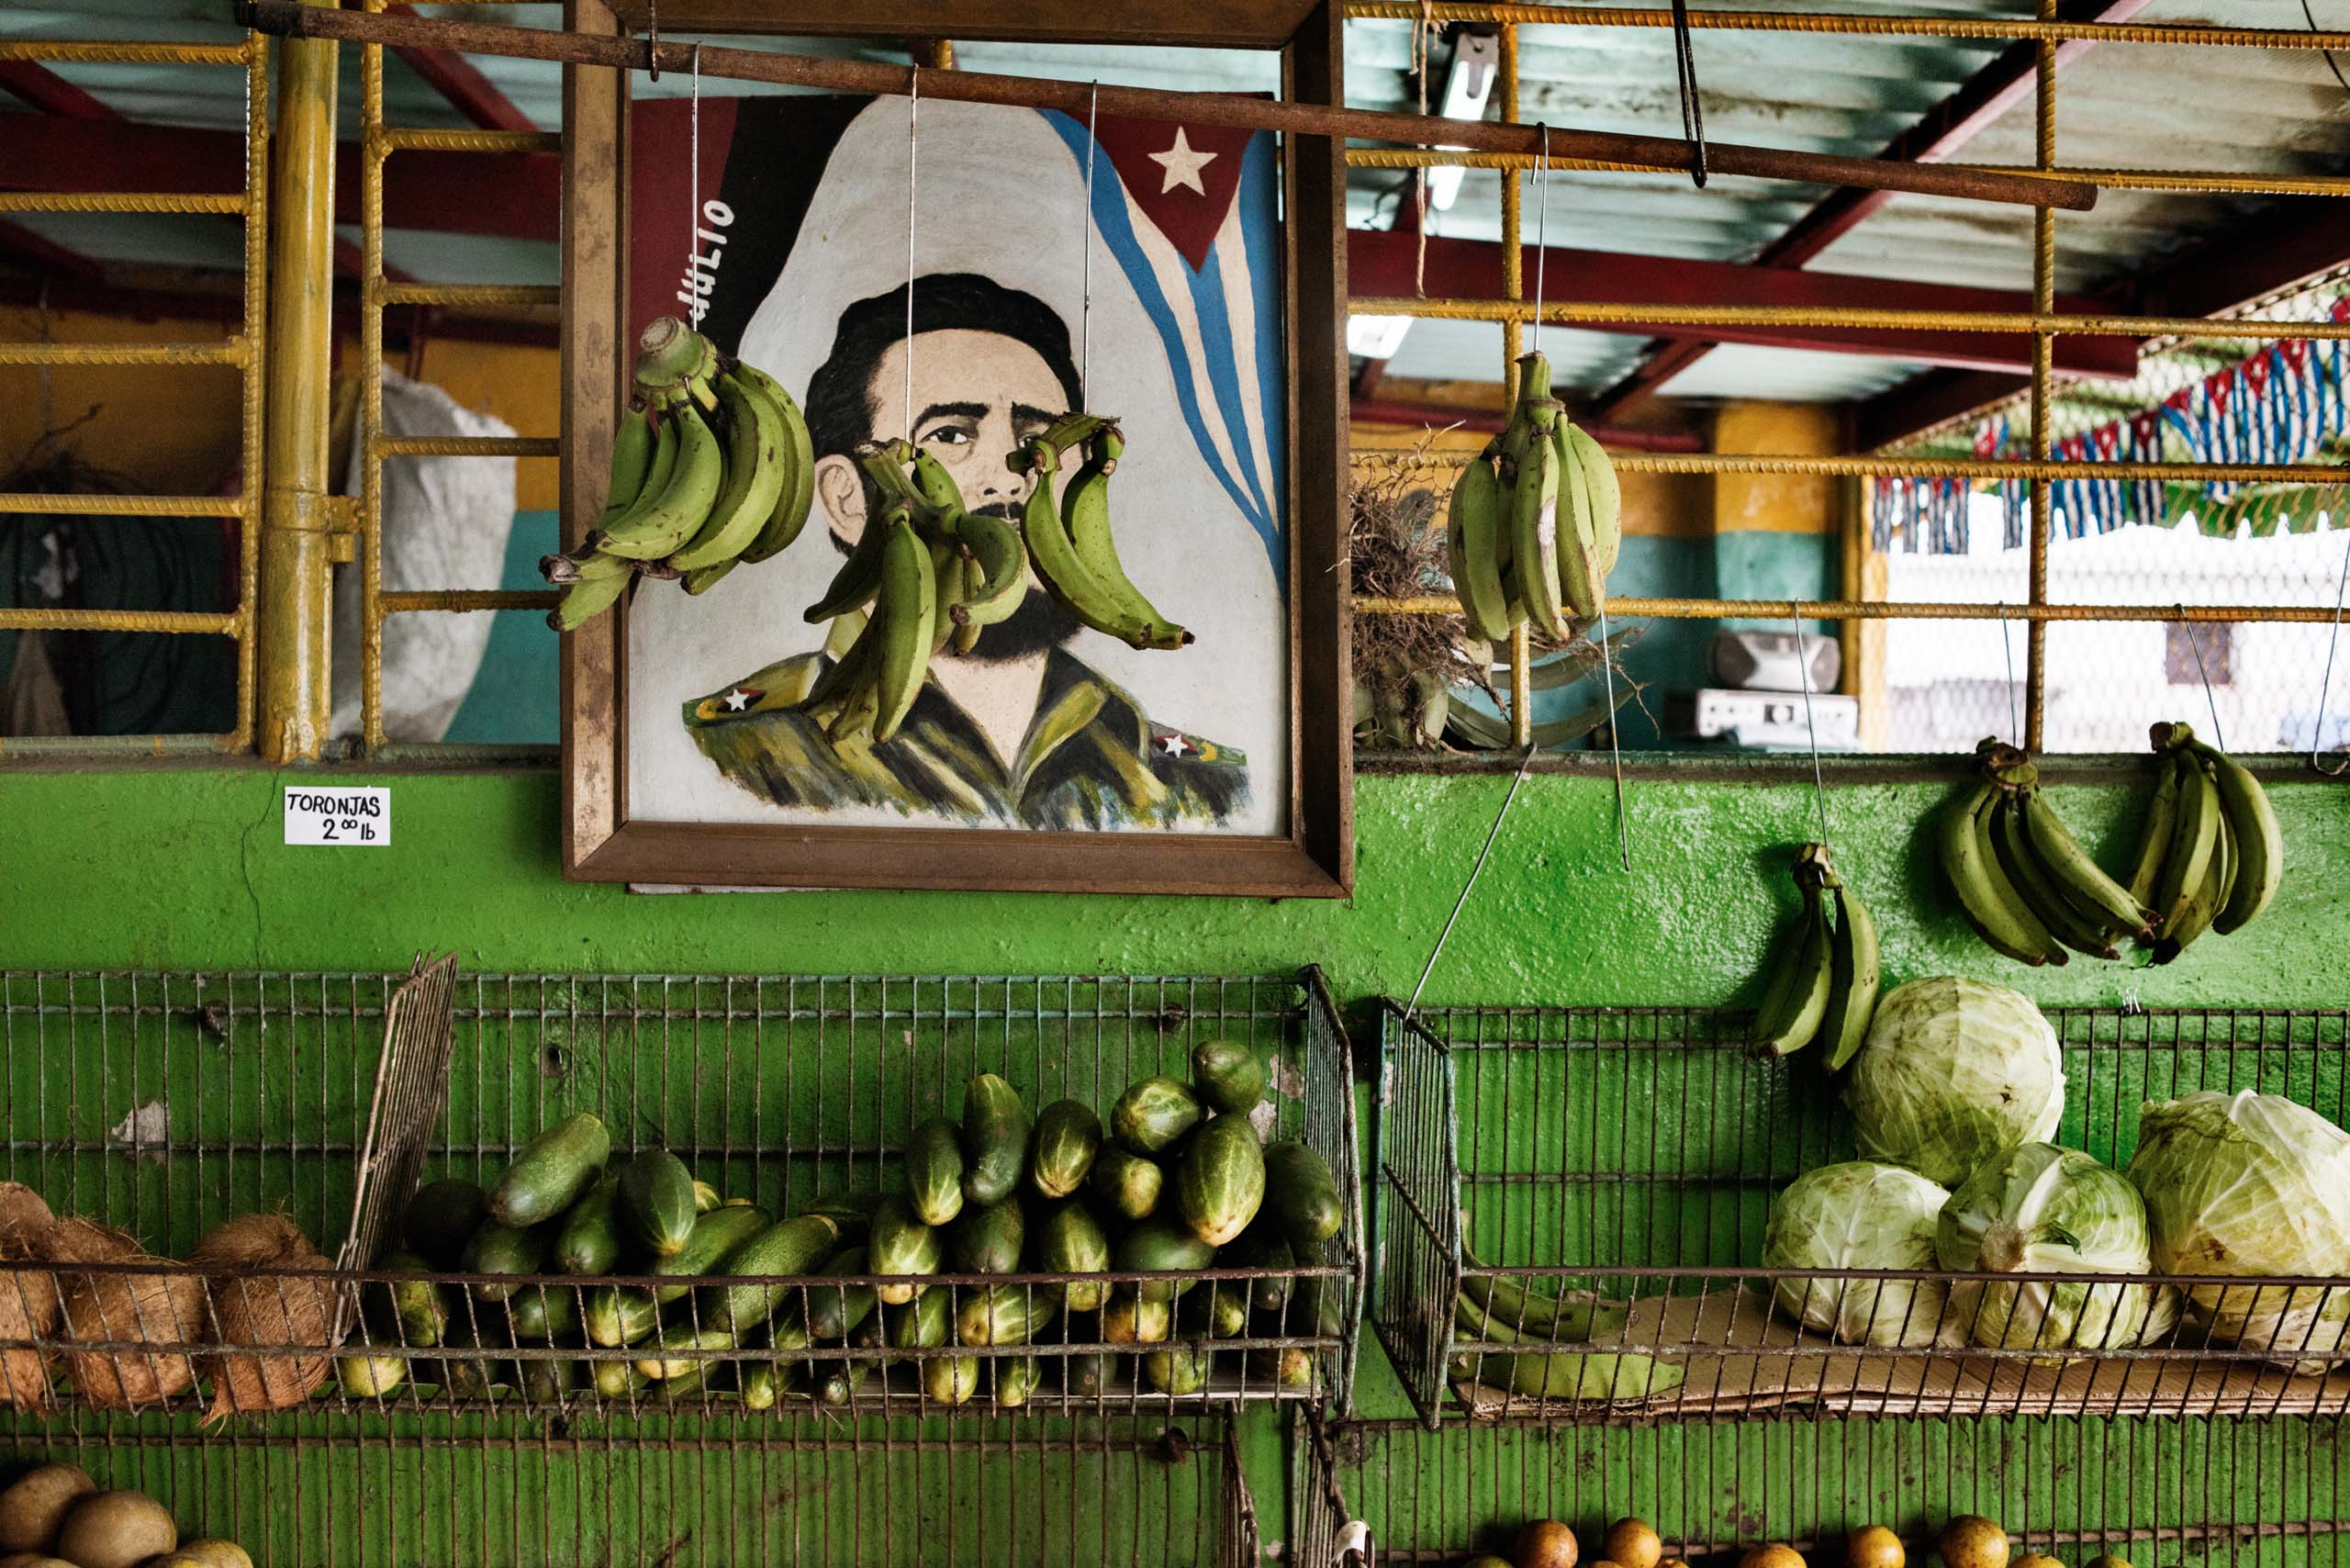 December 2014. In a state run market,  a portrait of Fidel Castro is seen among fruit and vegetables. Because of limited food supply, Cubans depend on monthly rations for basic staples like rice and beans.